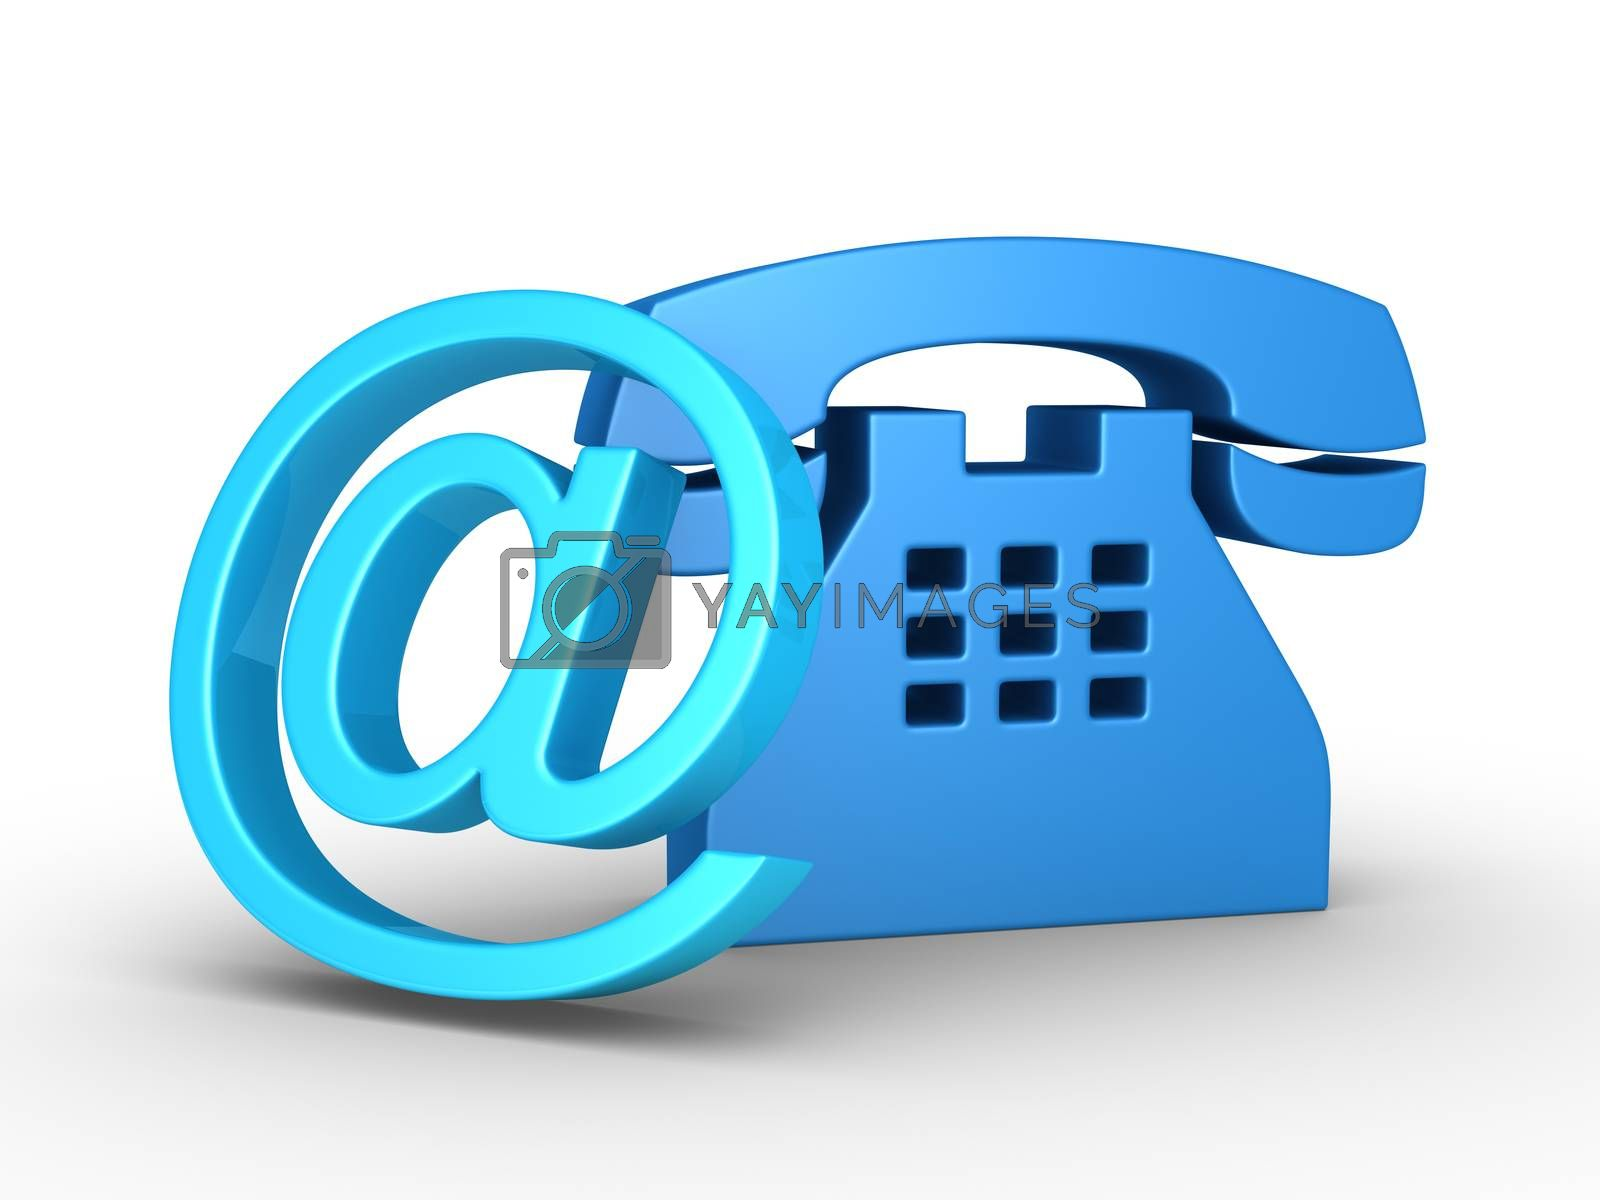 Telephone symbol and an e-mail symbol leaning on it